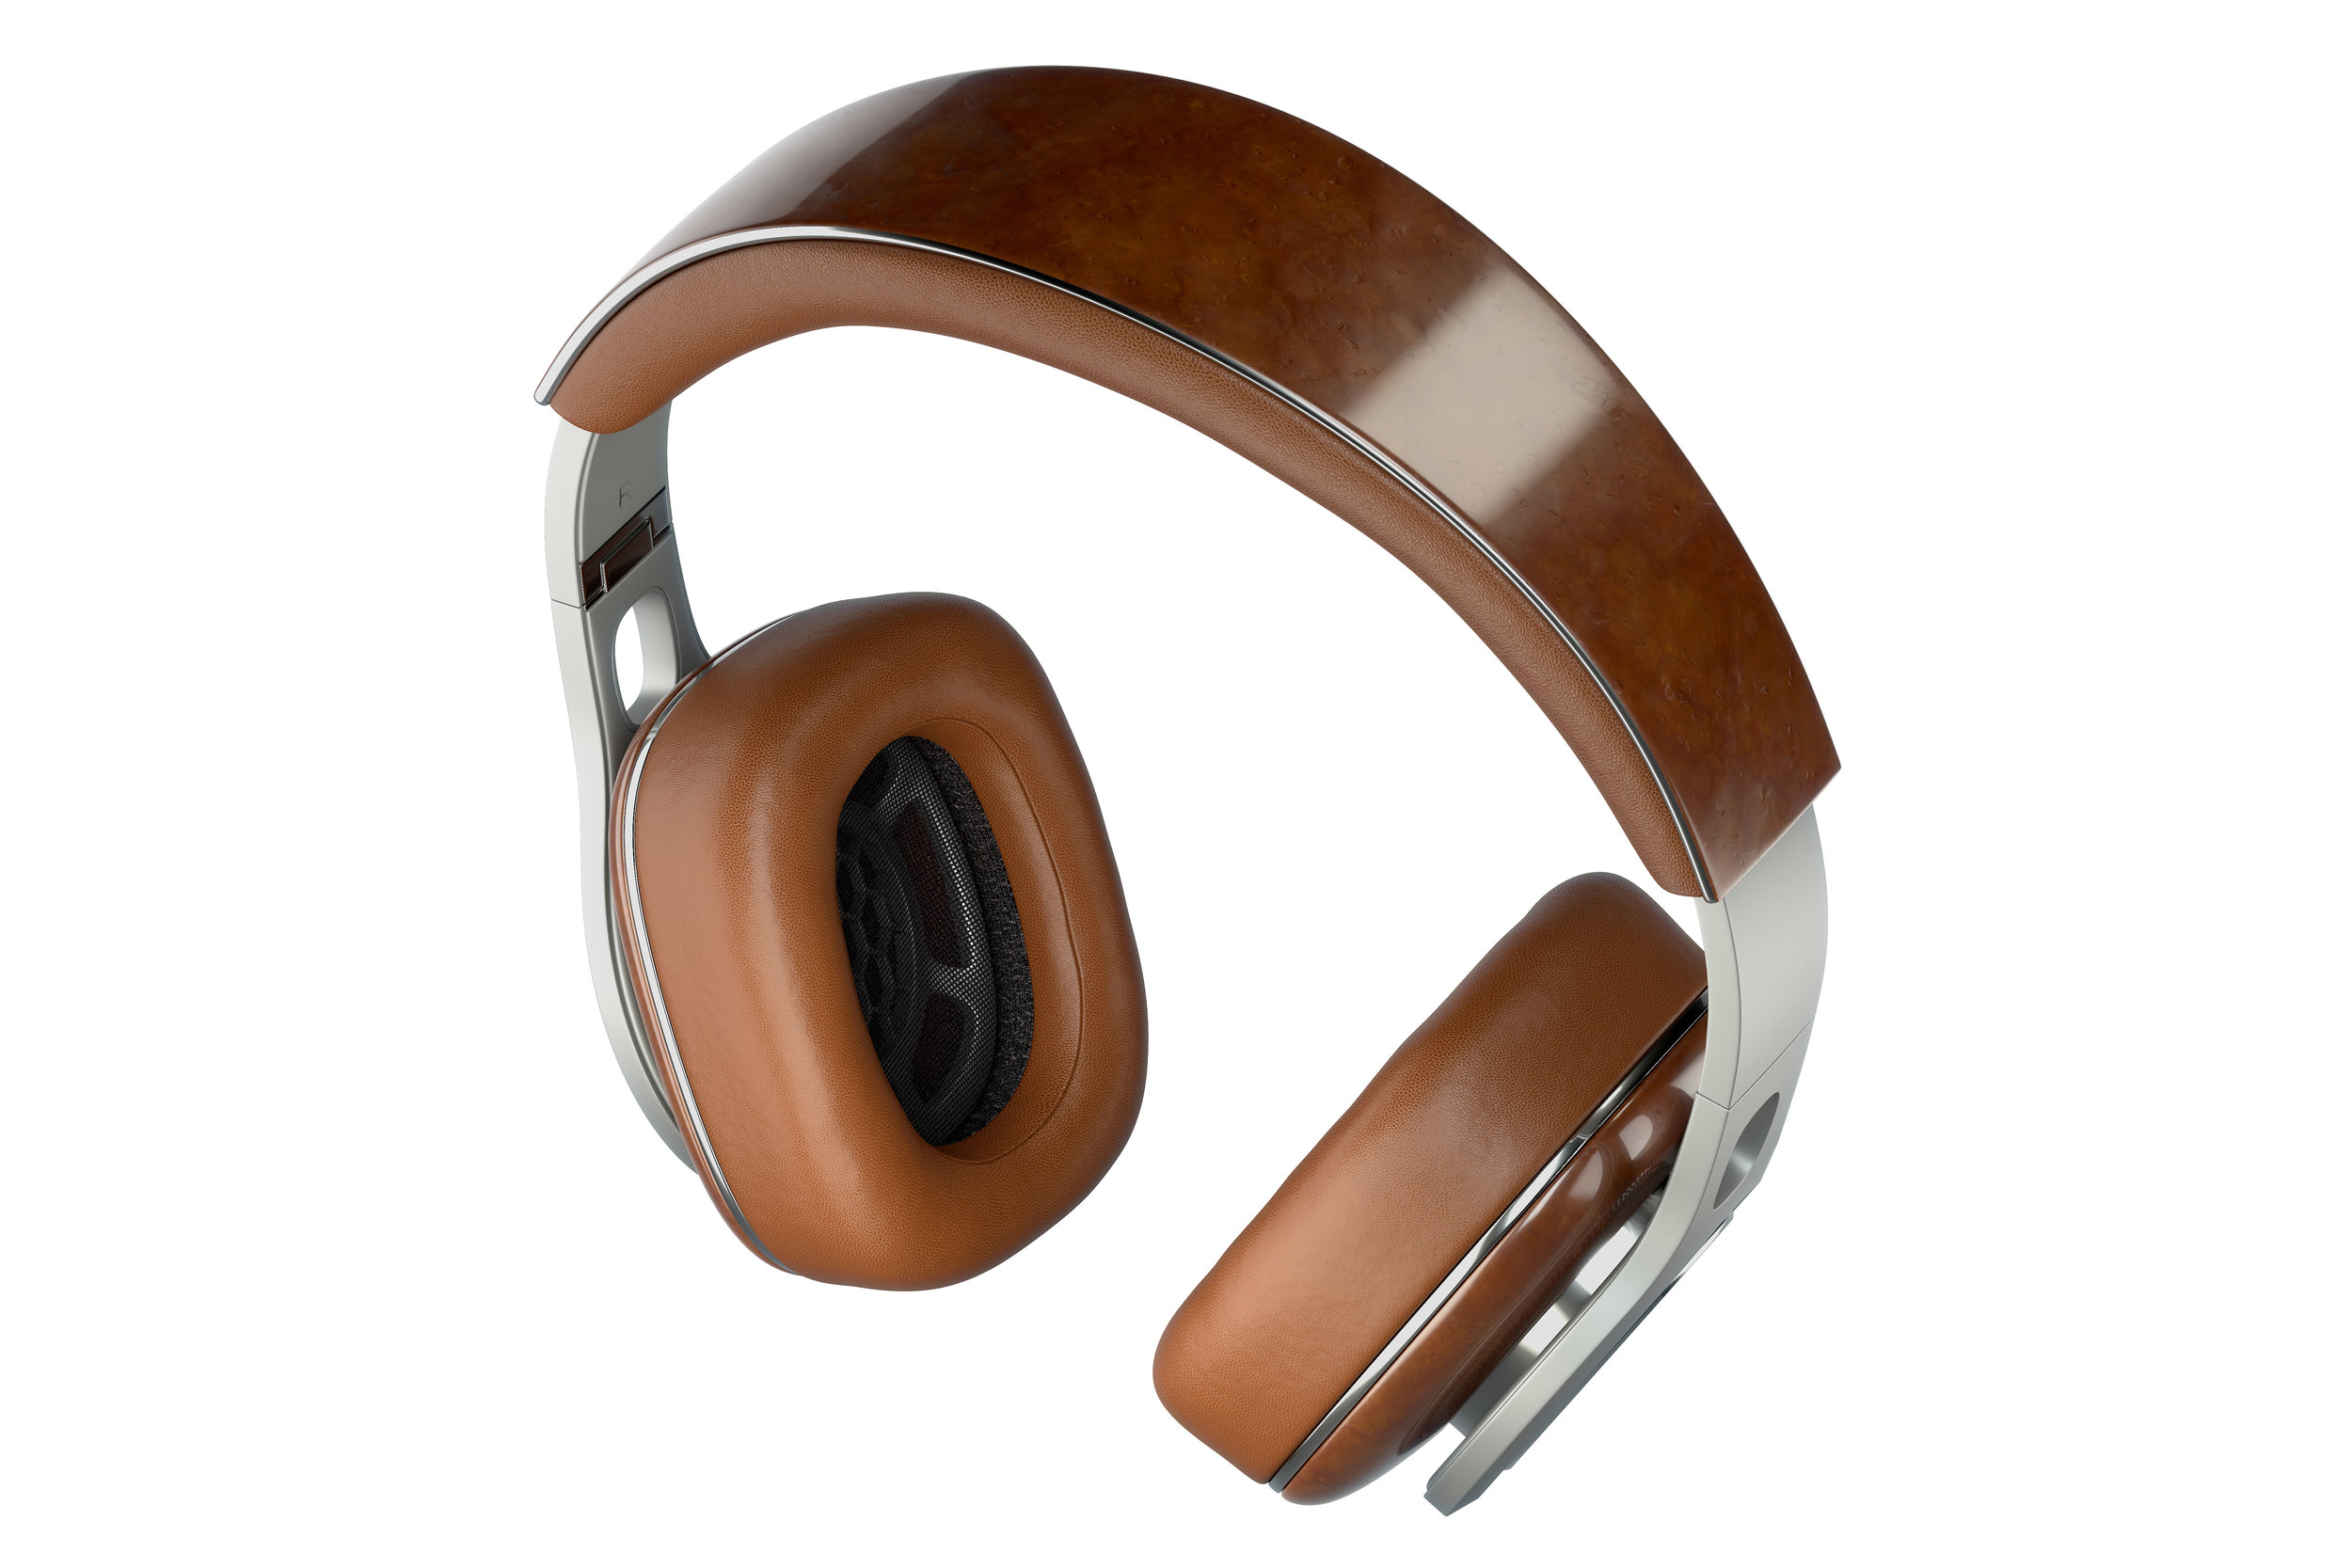 Headphone_Image_03.jpg